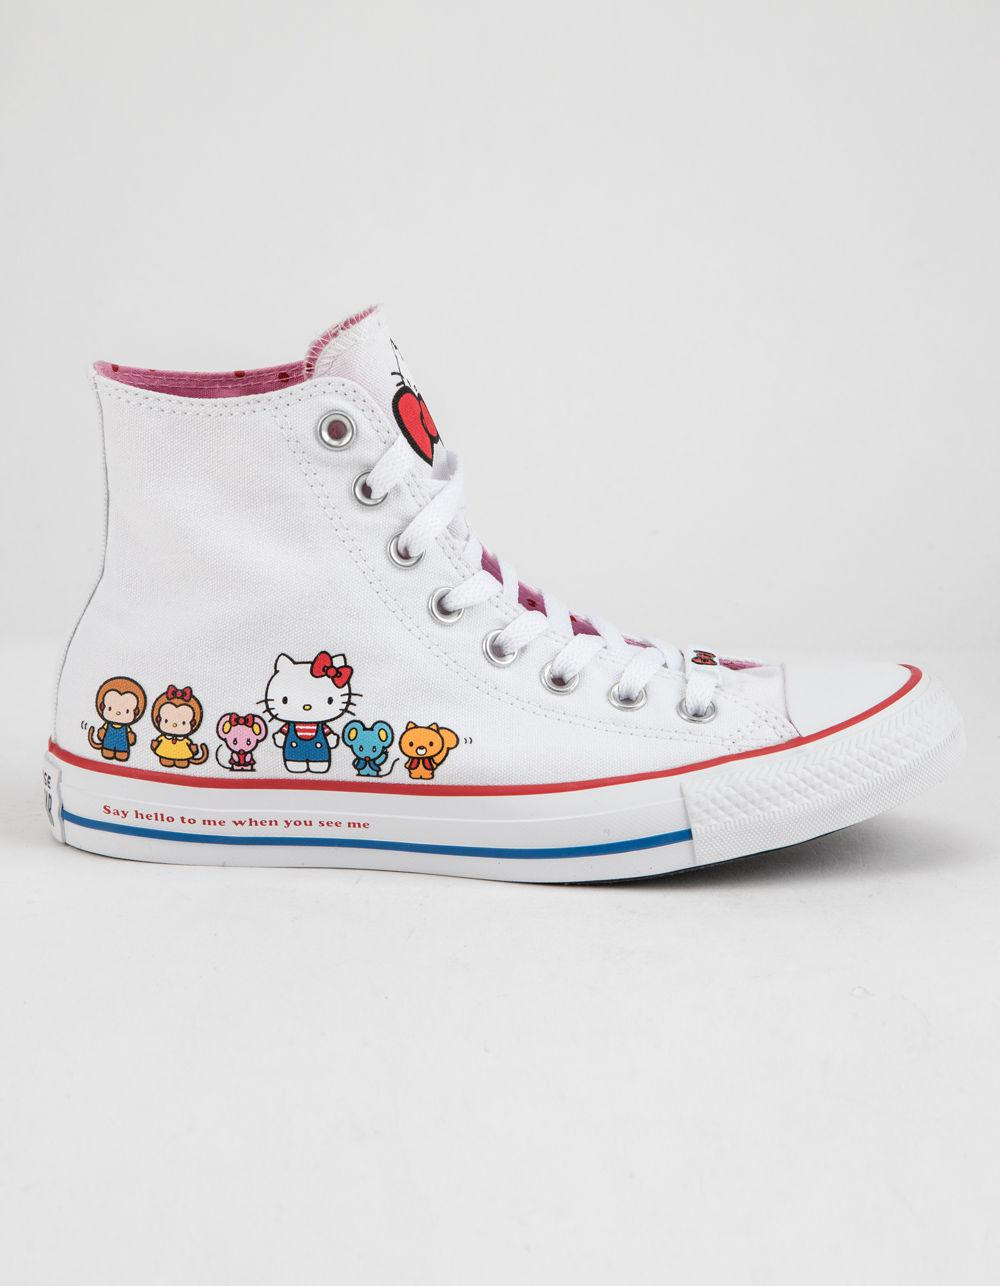 Converse. X Hello Kitty Chuck Taylor All Star White   Prism Pink High Top  Womens Shoes 0f3da1baa